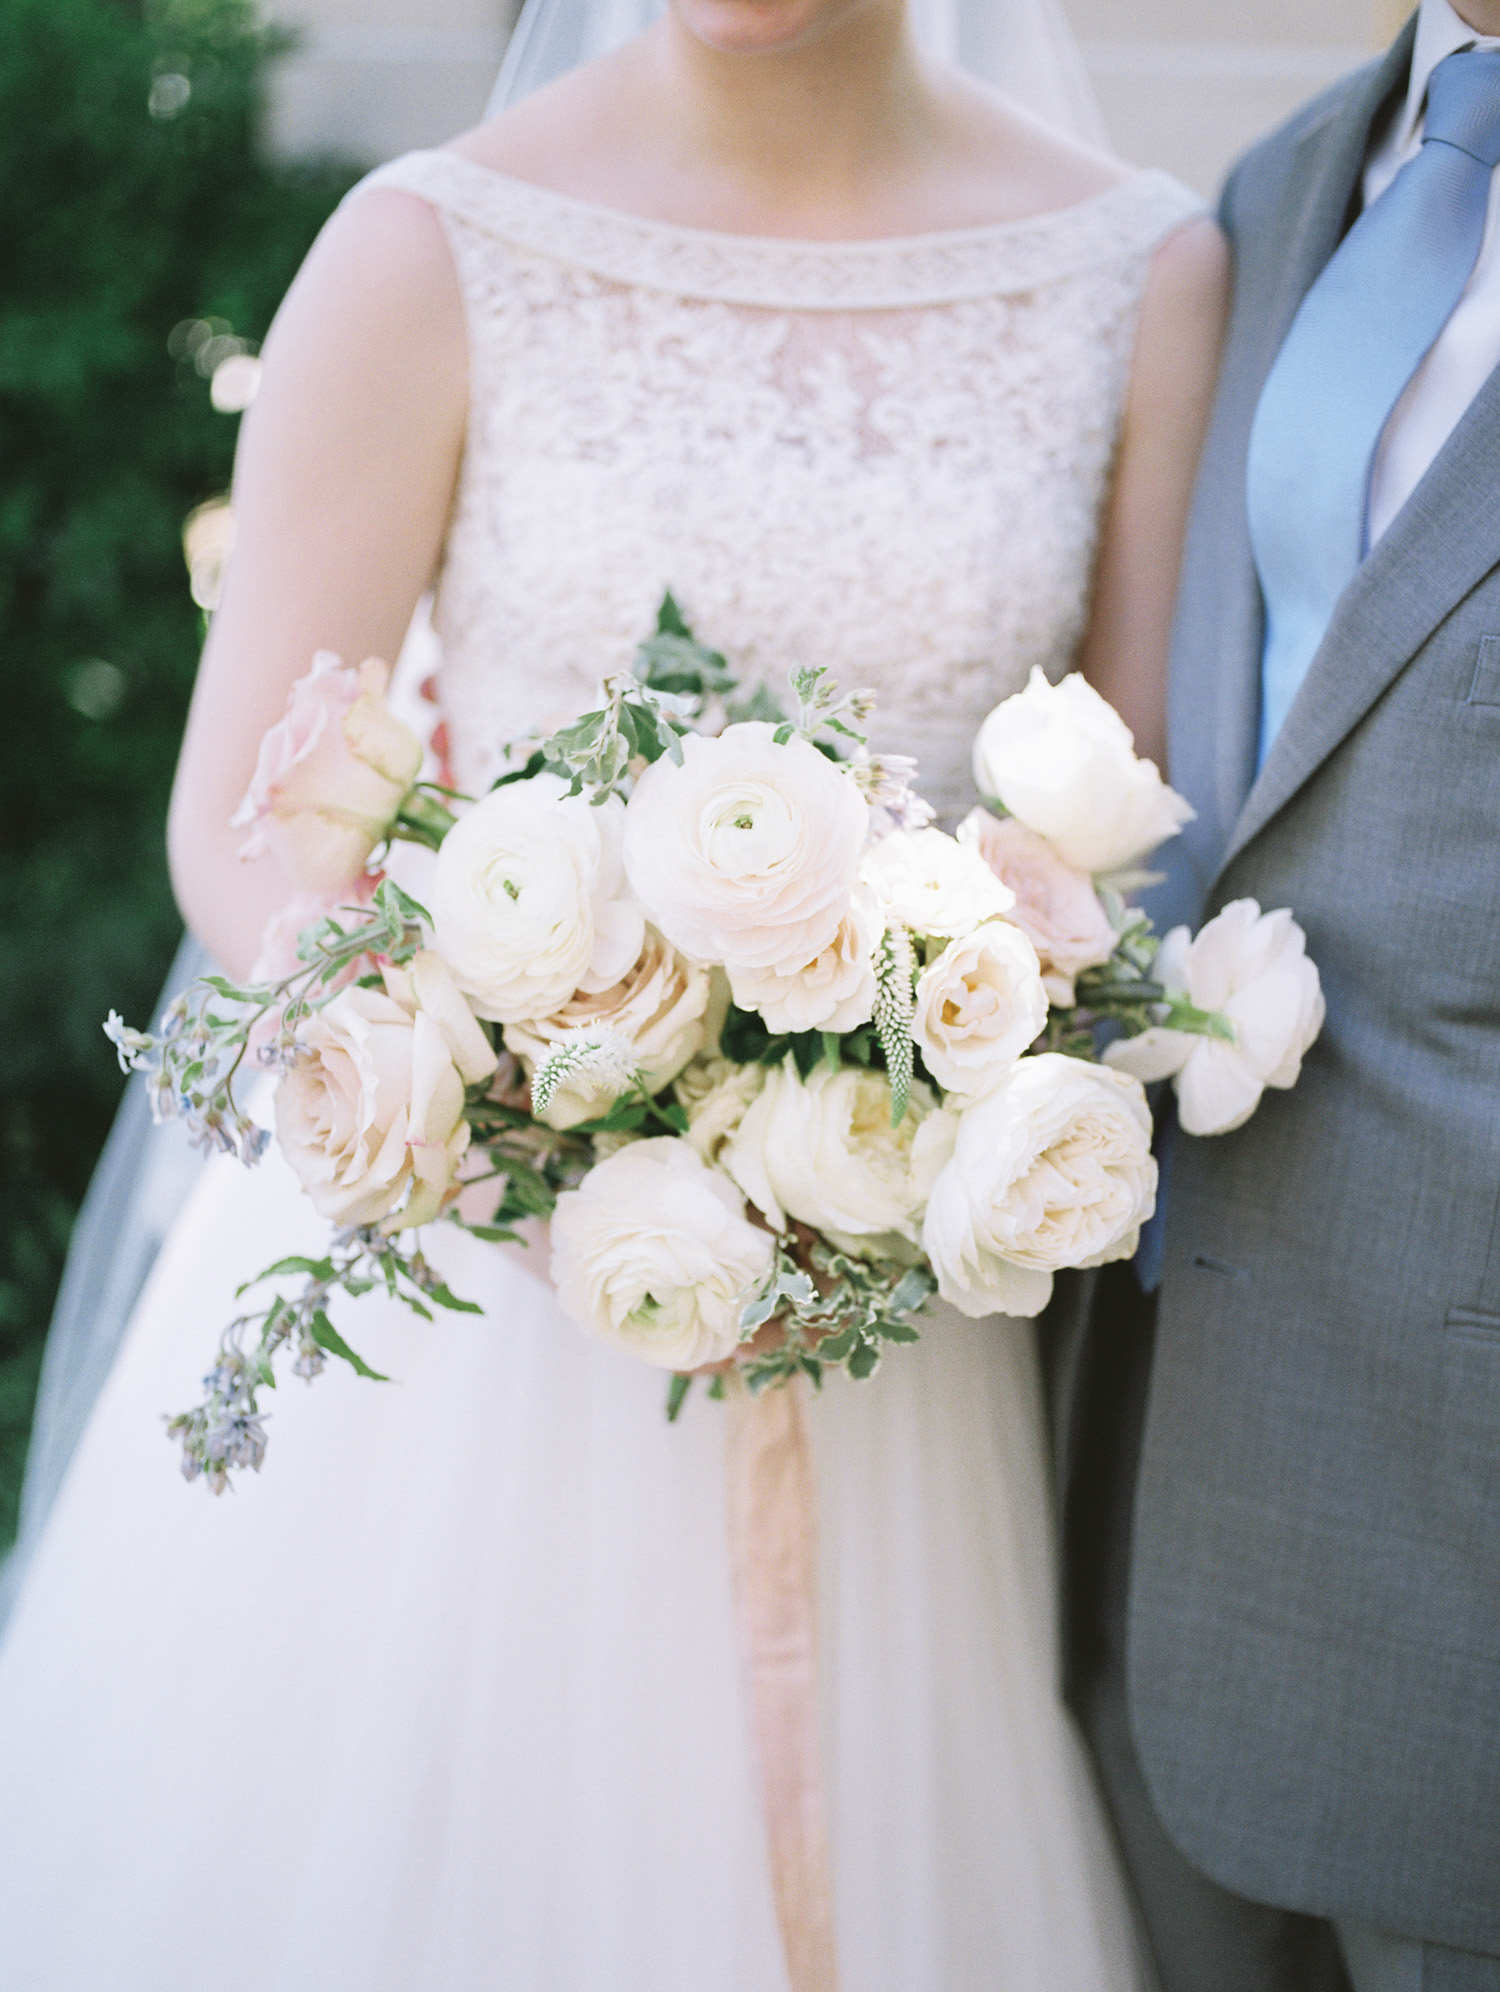 A lush bridal bouquet captured on film by Christina Harrison Photography